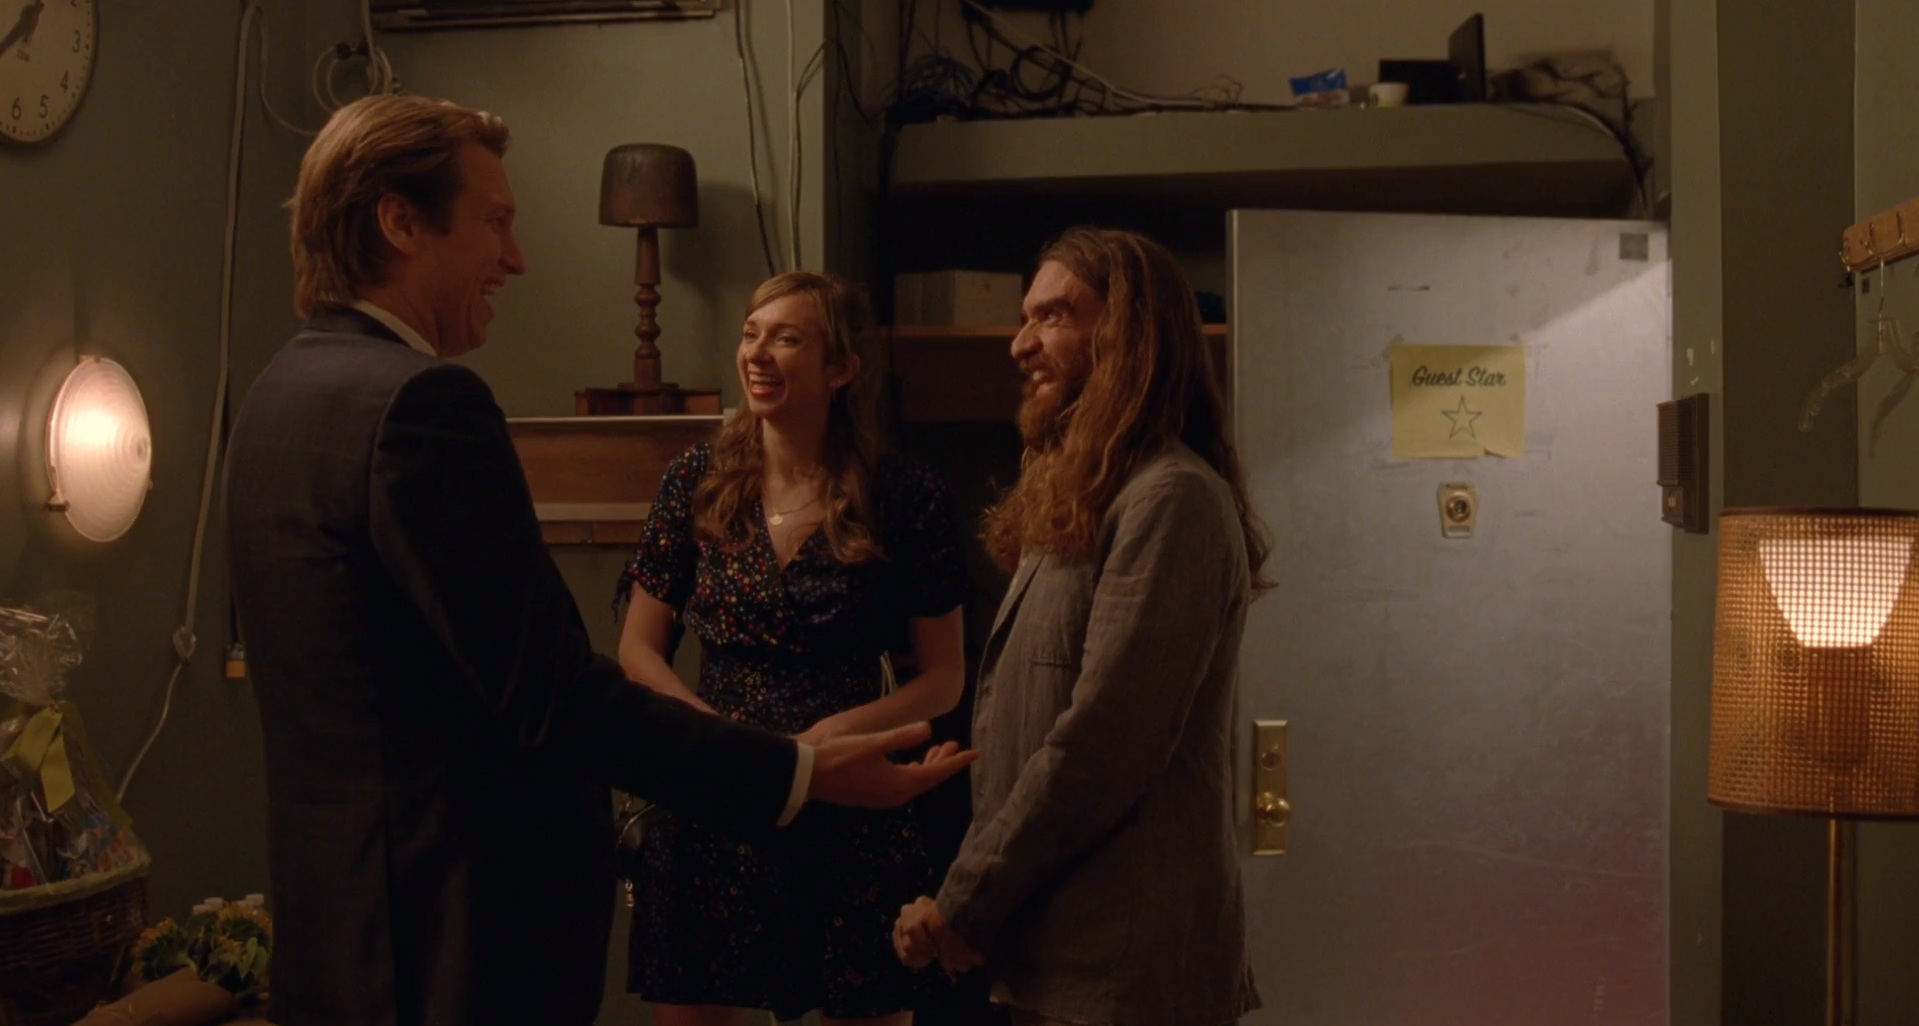 As ever, ex-wife Jess (Lauren Lapkus) and guy-she-left-Pete-for Lief (George Basil) show up in enthusiastic support of Pete's comedy career. What I love about  Crashing  is the way the camera lingers in the green room after Pete leaves. We get just an extra second of Lief and Jess checking out the gift basket, Lief firmly rejecting the Jelly Belly. The show elevates its supporting characters with evocative details, not unnecessary side plots. It really works.